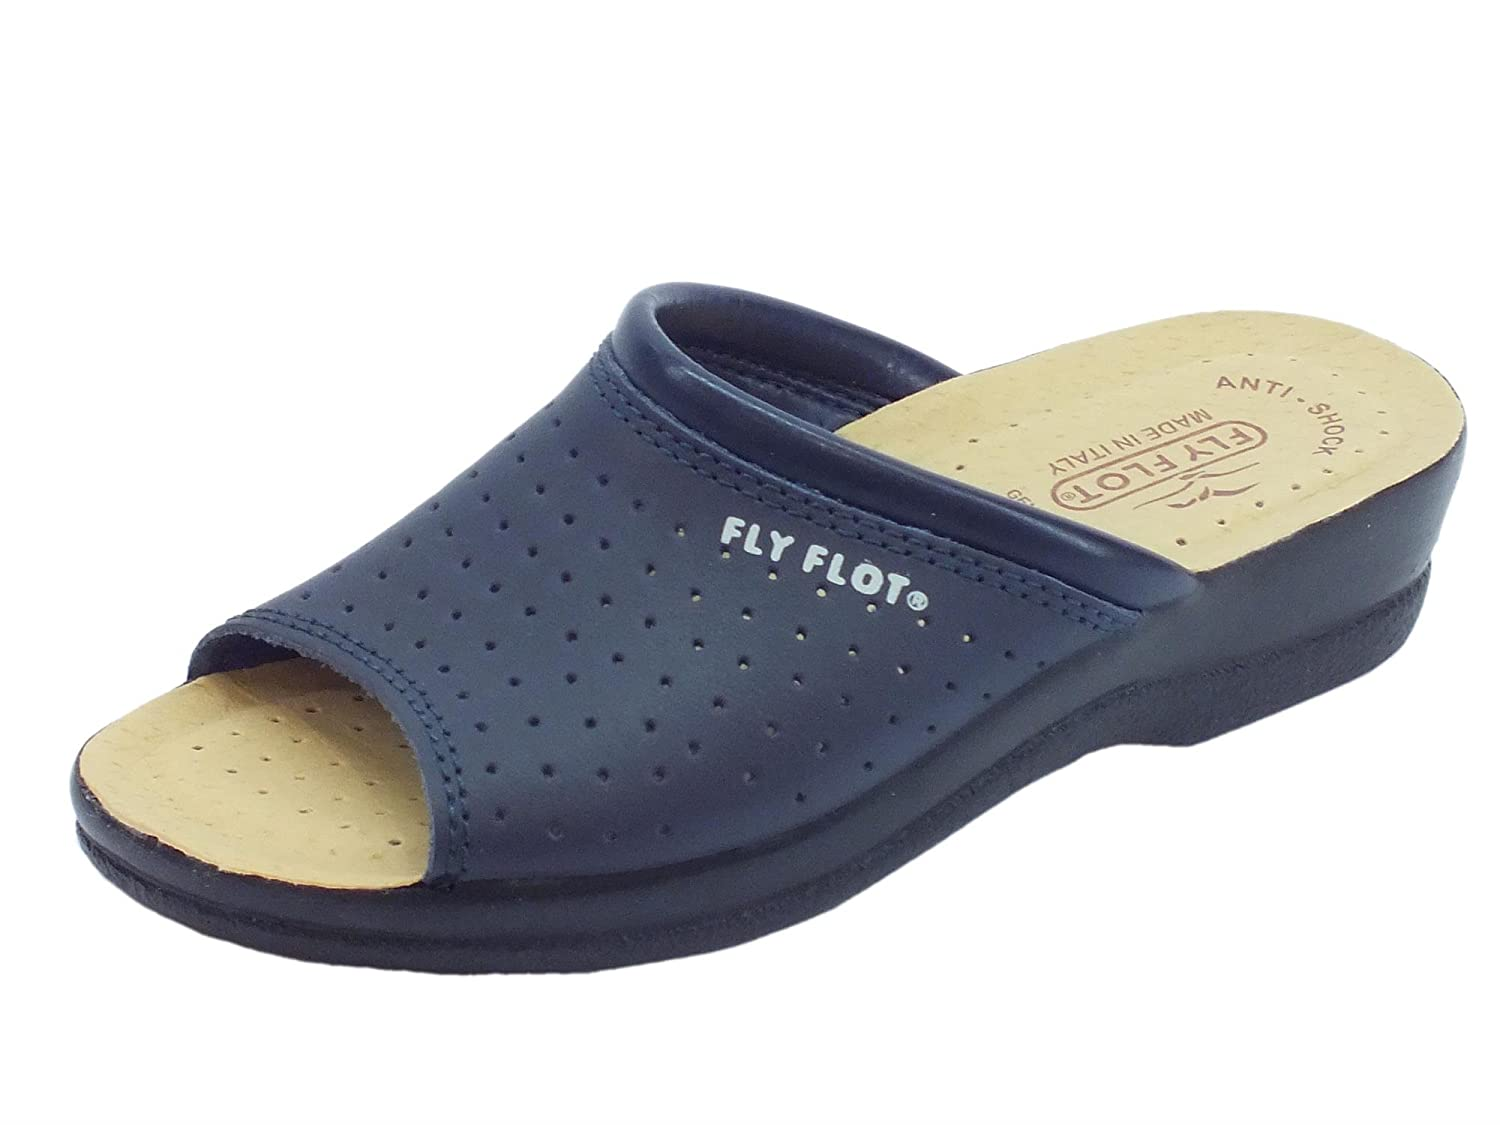 Fly Flot Pantofole Spuntate Sottopiede in Ecopelle Traforata Blu